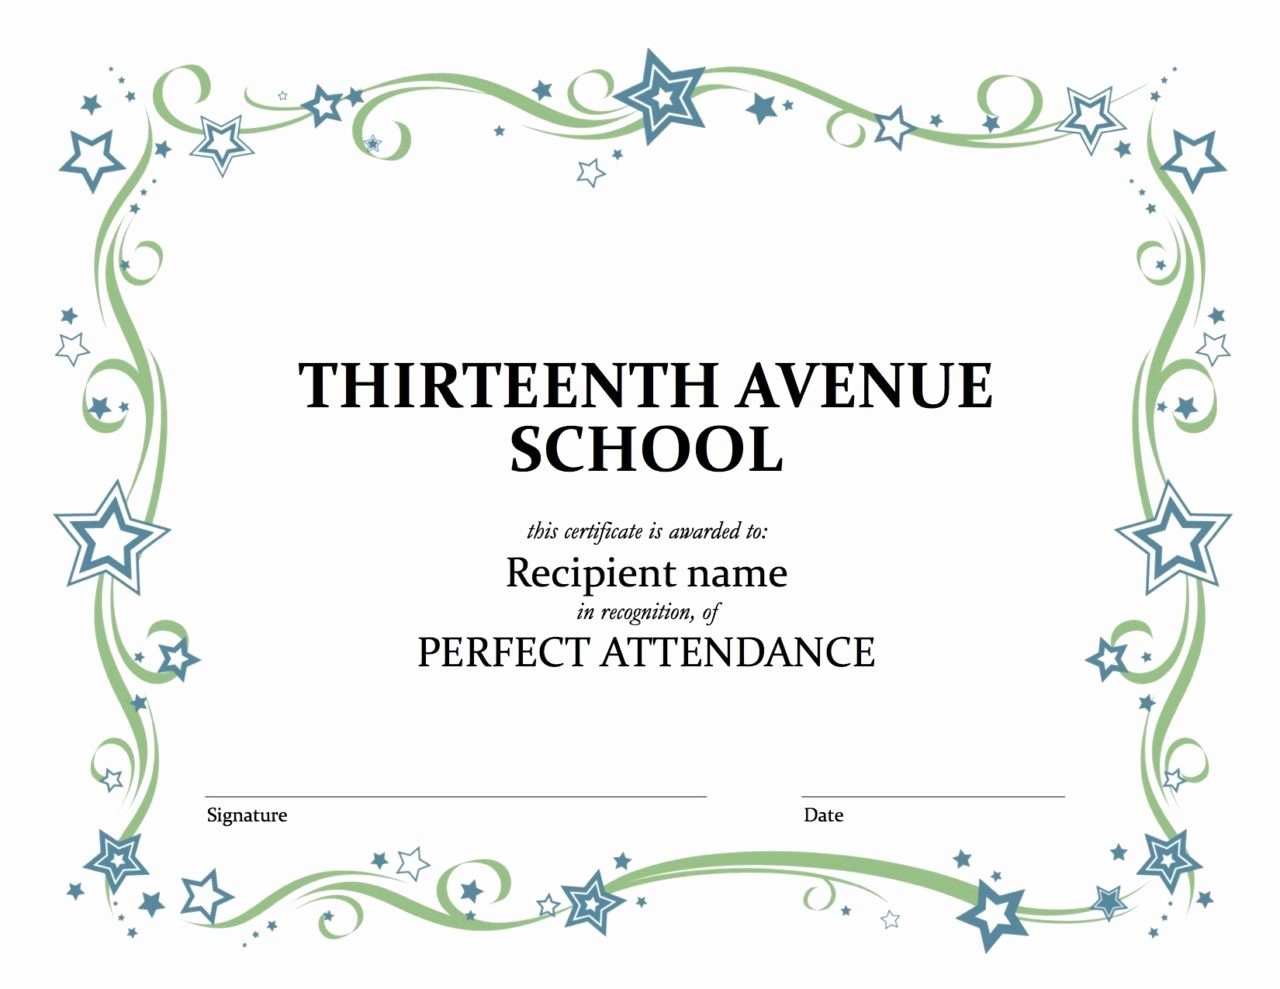 Uniform Certificate Of attendance Elegant Perfect attendance Thirteenth Avenue Dr Mlk Jr School